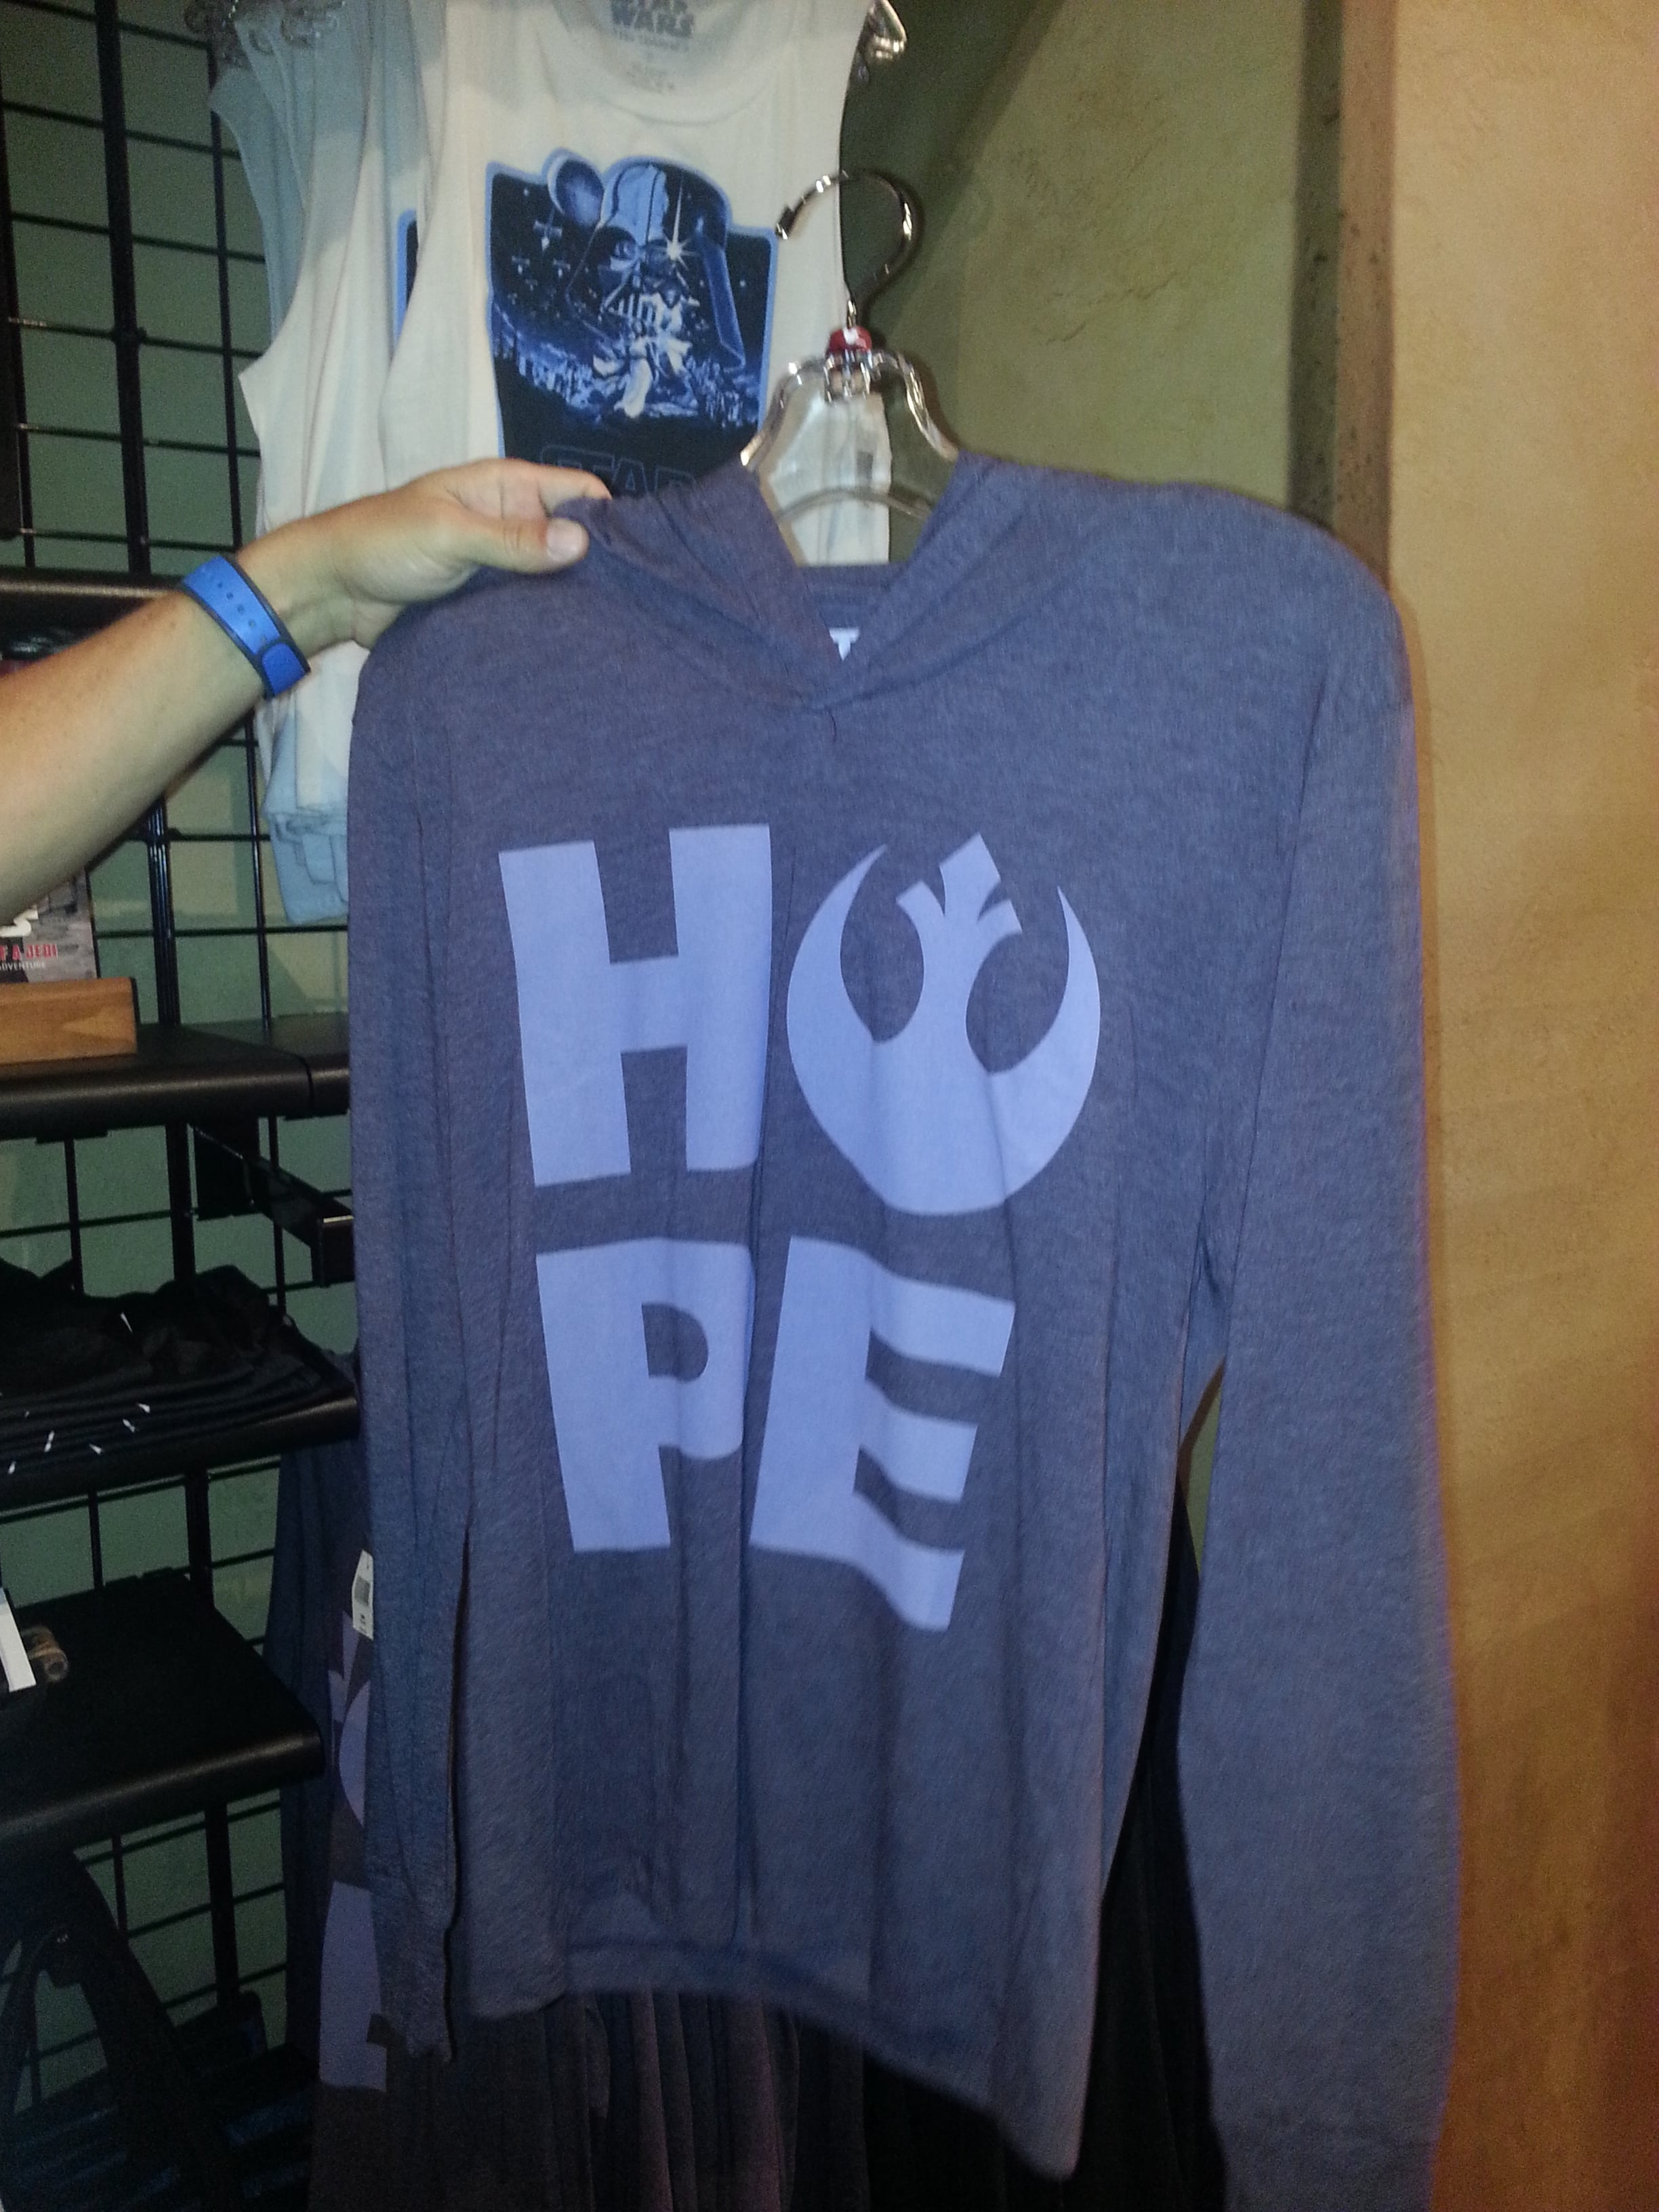 I liked this shirt because HOPE is one of my favorite words!